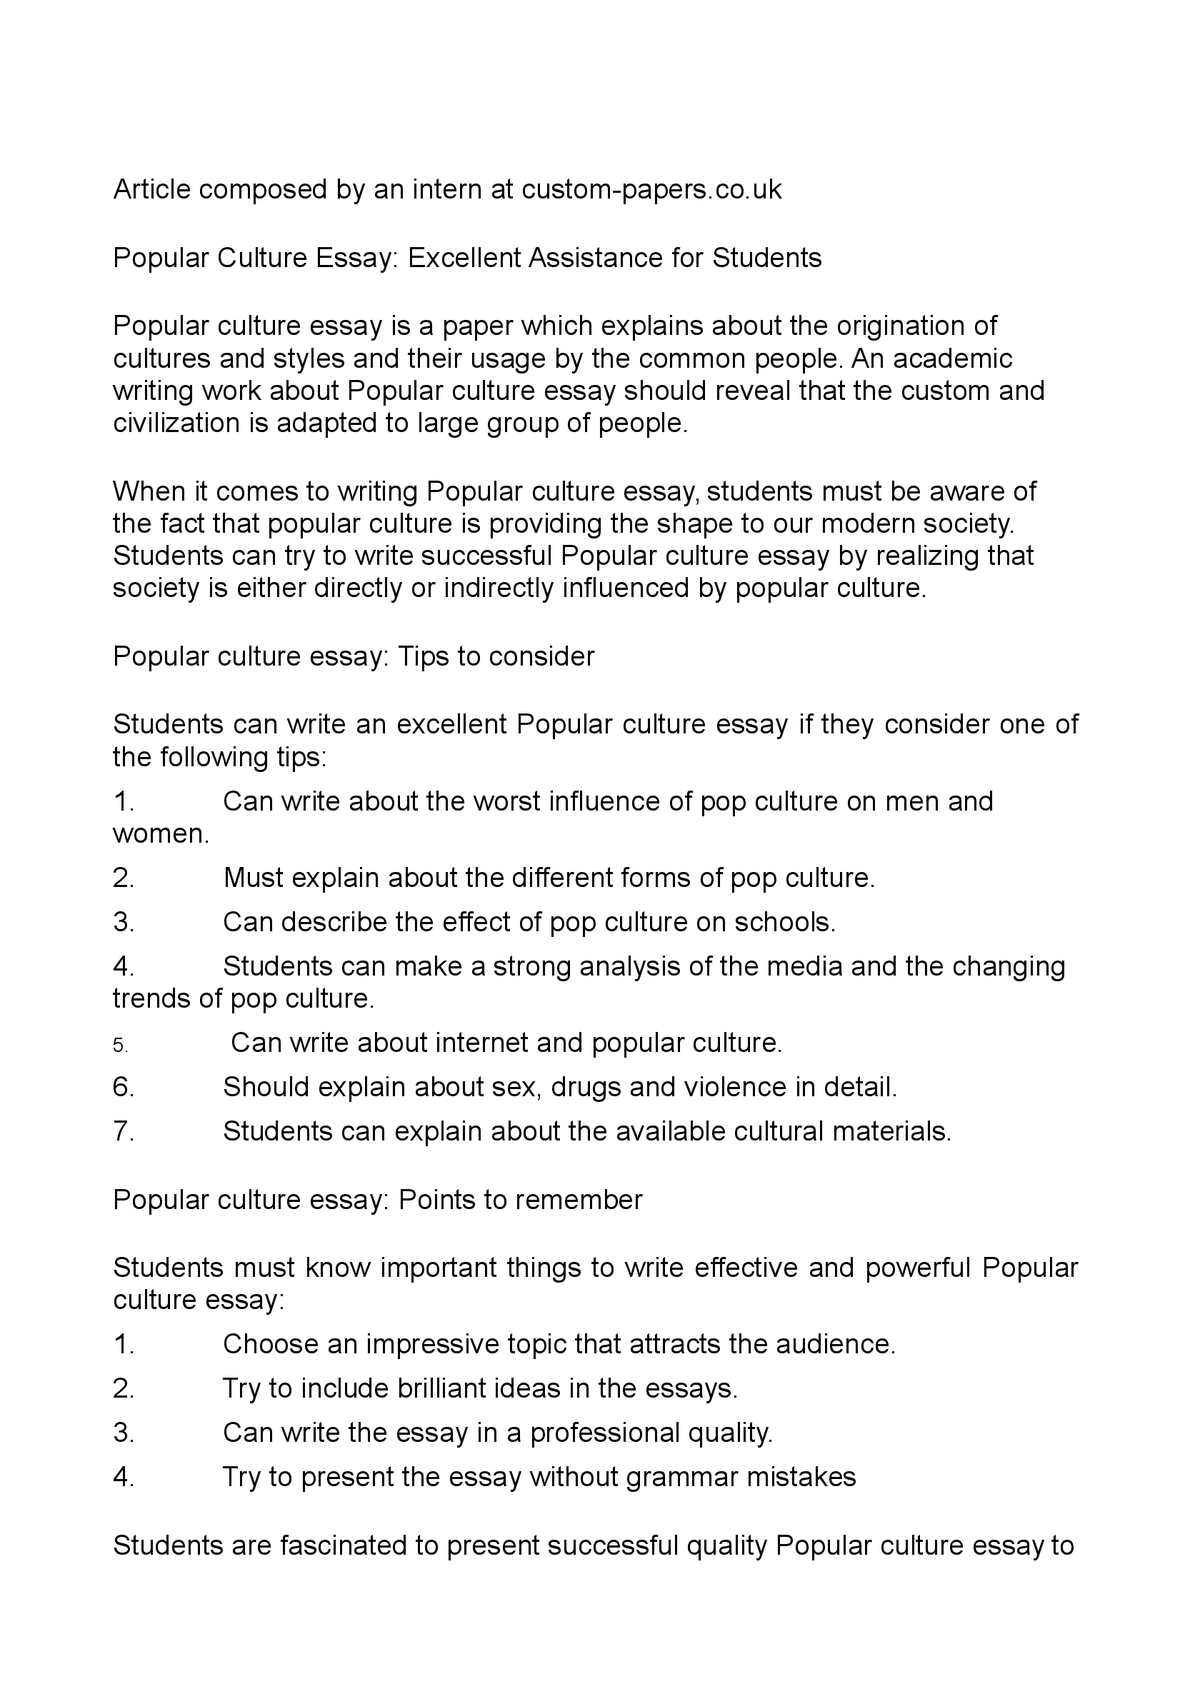 English Model Essays  Reflective Essay On English Class also Science Fiction Essay Topics Calamo  Popular Culture Essay Excellent Assistance For Students How To Use A Thesis Statement In An Essay